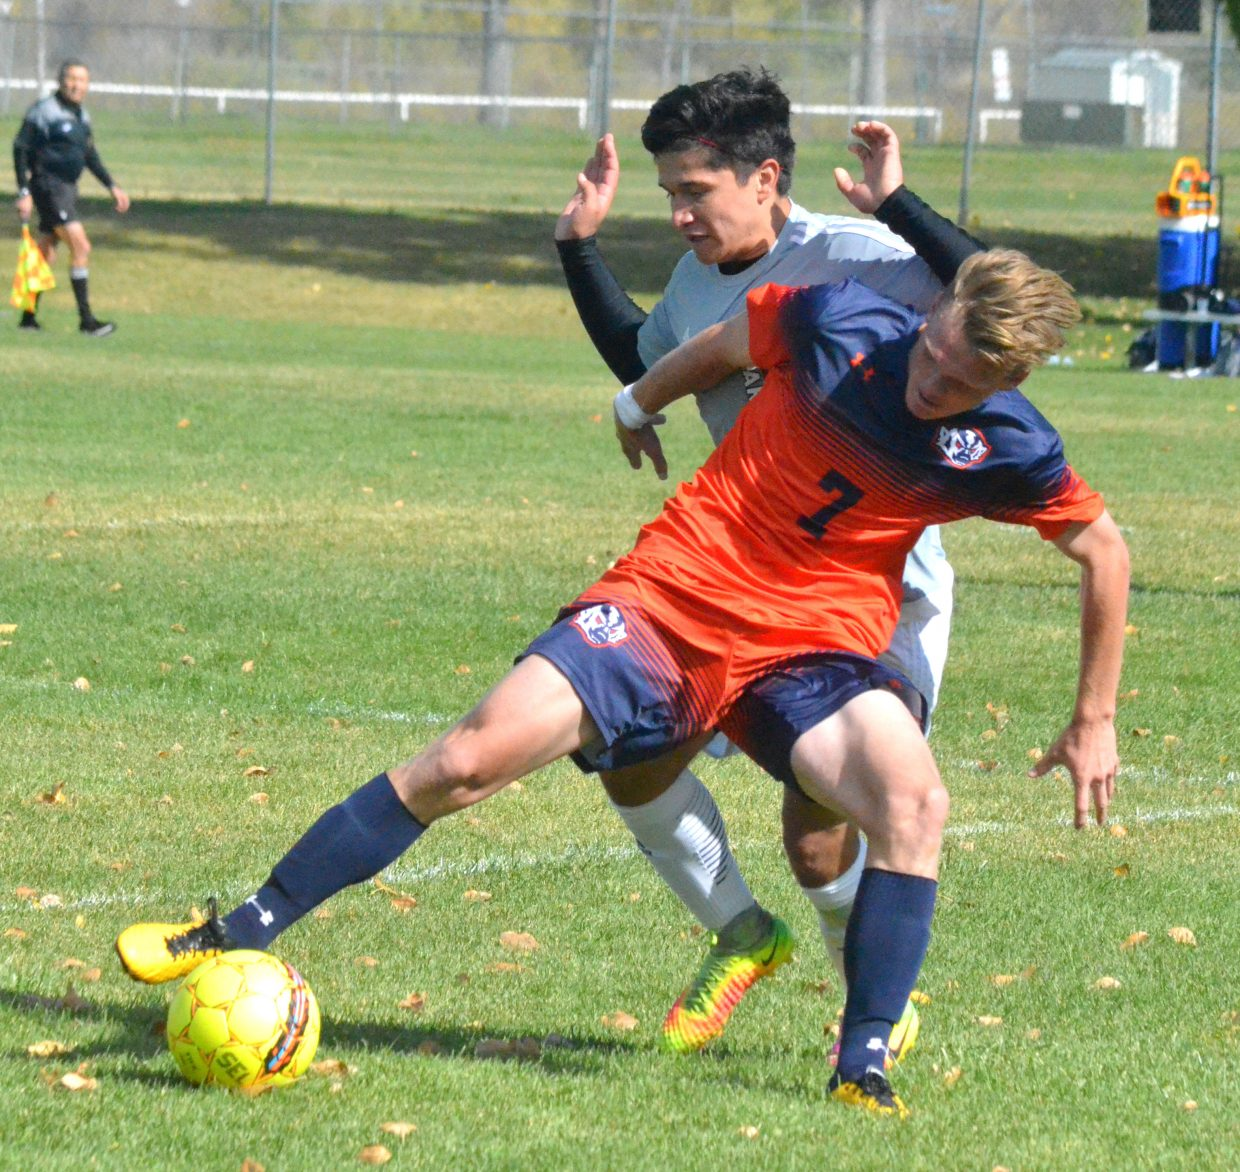 Colorado Northwestern Community College's Ulises Silva works to get to the ball and avoid a foul during Spartan soccer's game with Snow College.